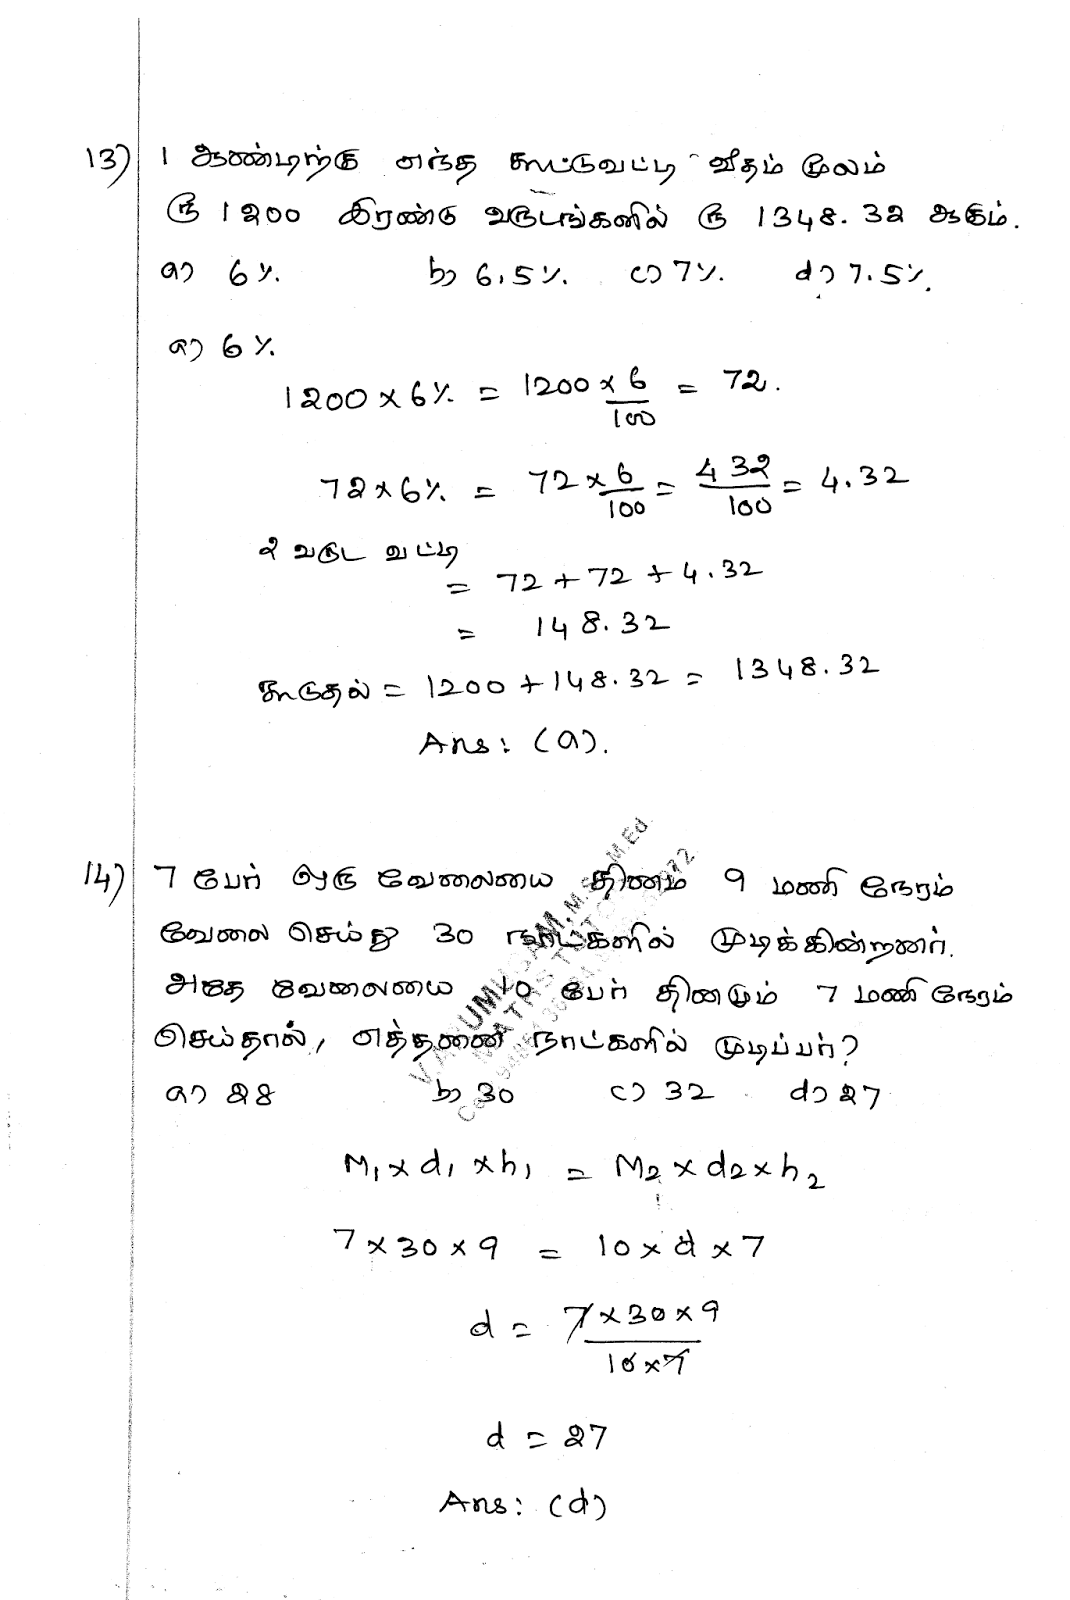 TNPSC - GROUP2 NON INTERVIEW - 2016 EXAM (DATE: 24.1.2016) QUESTIONS - 6